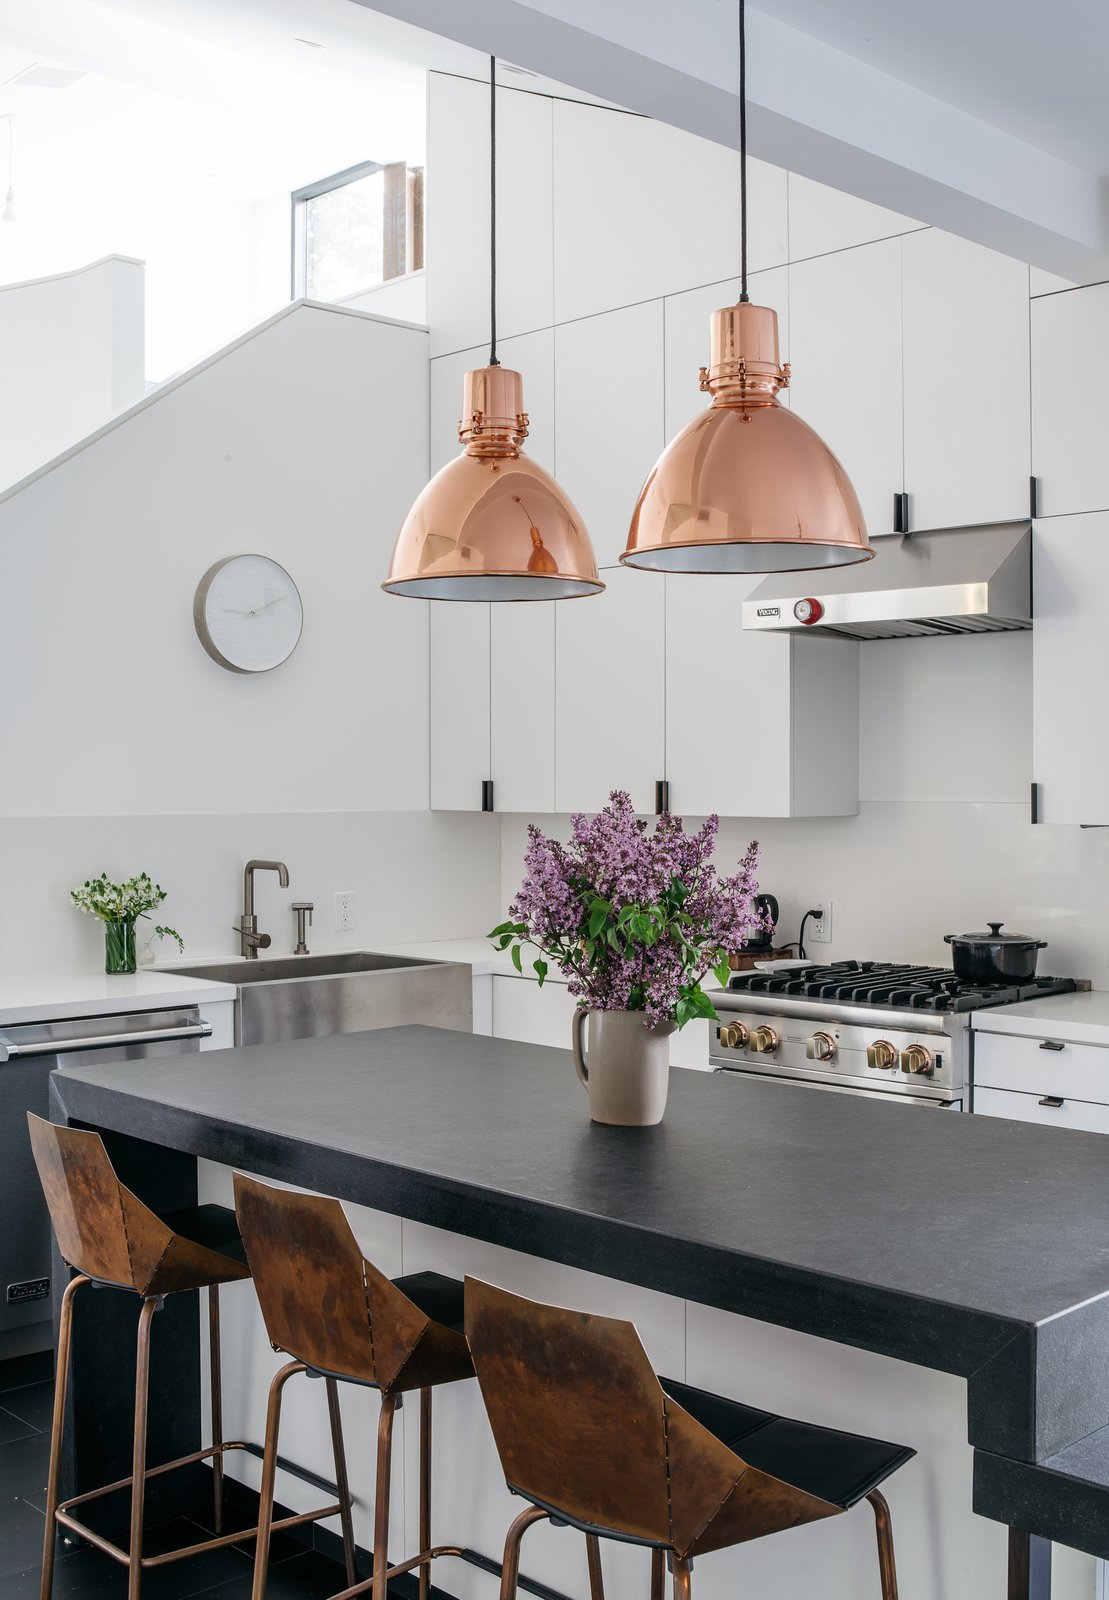 The kitchen is outfitted with a granite countertop and custom casework; the hardware is by Tom Kundig